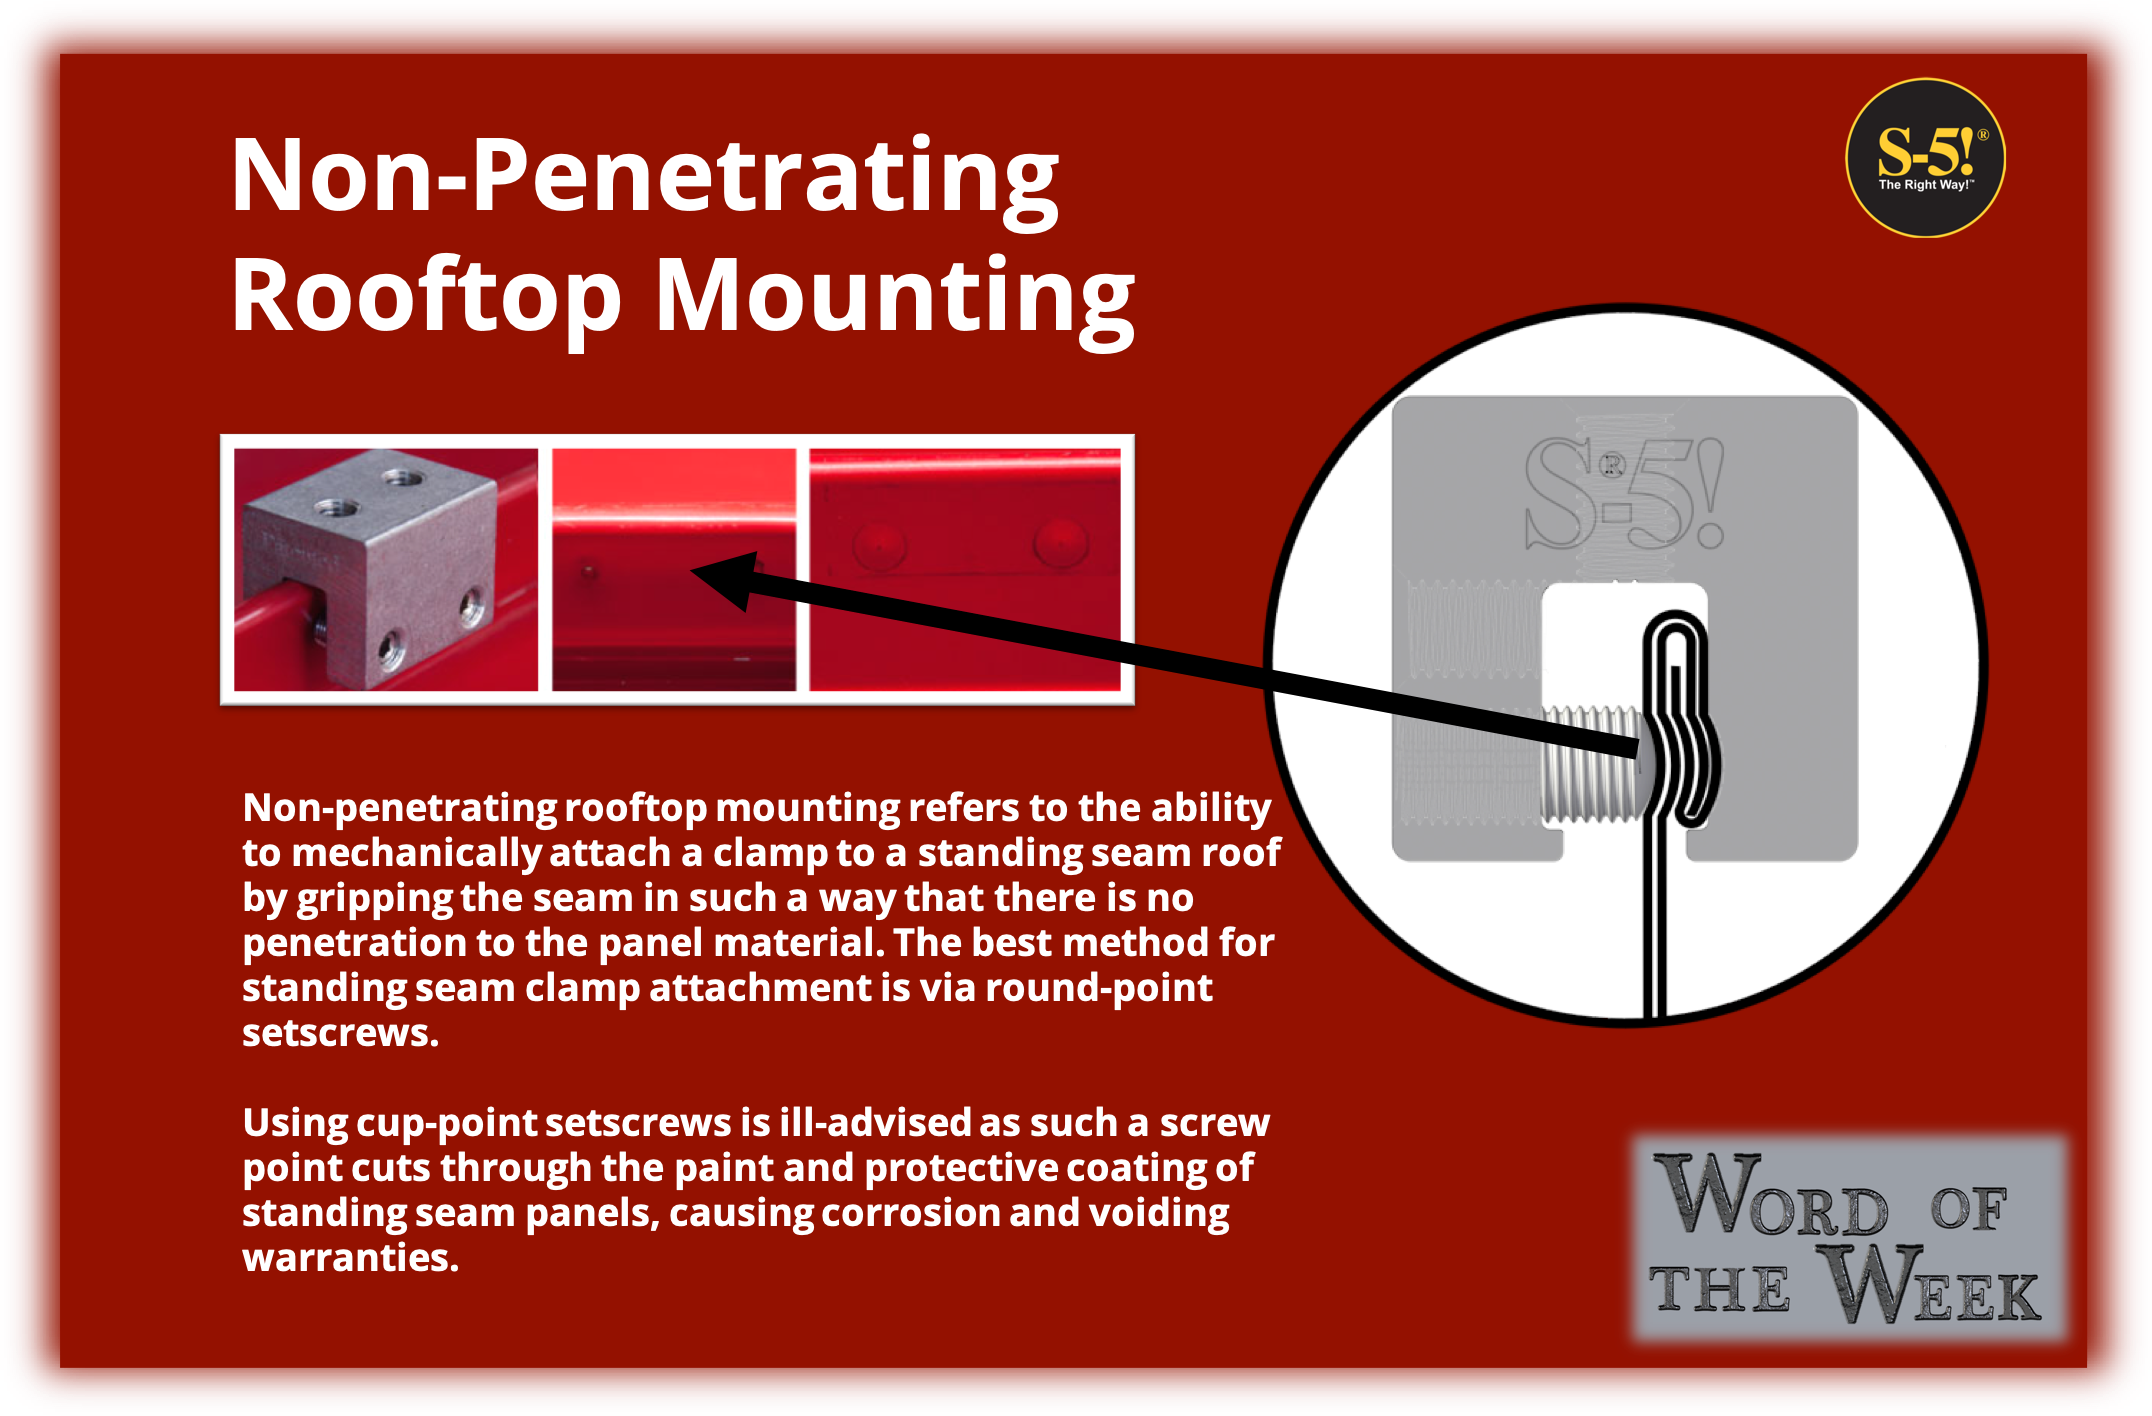 S-5® Word of the Week - Non-Penetrating Rooftop Mounting - Non-penetrating rooftop mounting refers to the ability to mechanically attach a clamp to a standing seam roof by gripping the seam in such a way that there is no penetration to the panel material. The best method for standing seam clamp attachment is via round-point setscrews.   Using cup-point setscrews is ill-advised as such a screw point cuts through the paint and protective coating of standing seam panels, causing corrosion and voiding warranties.